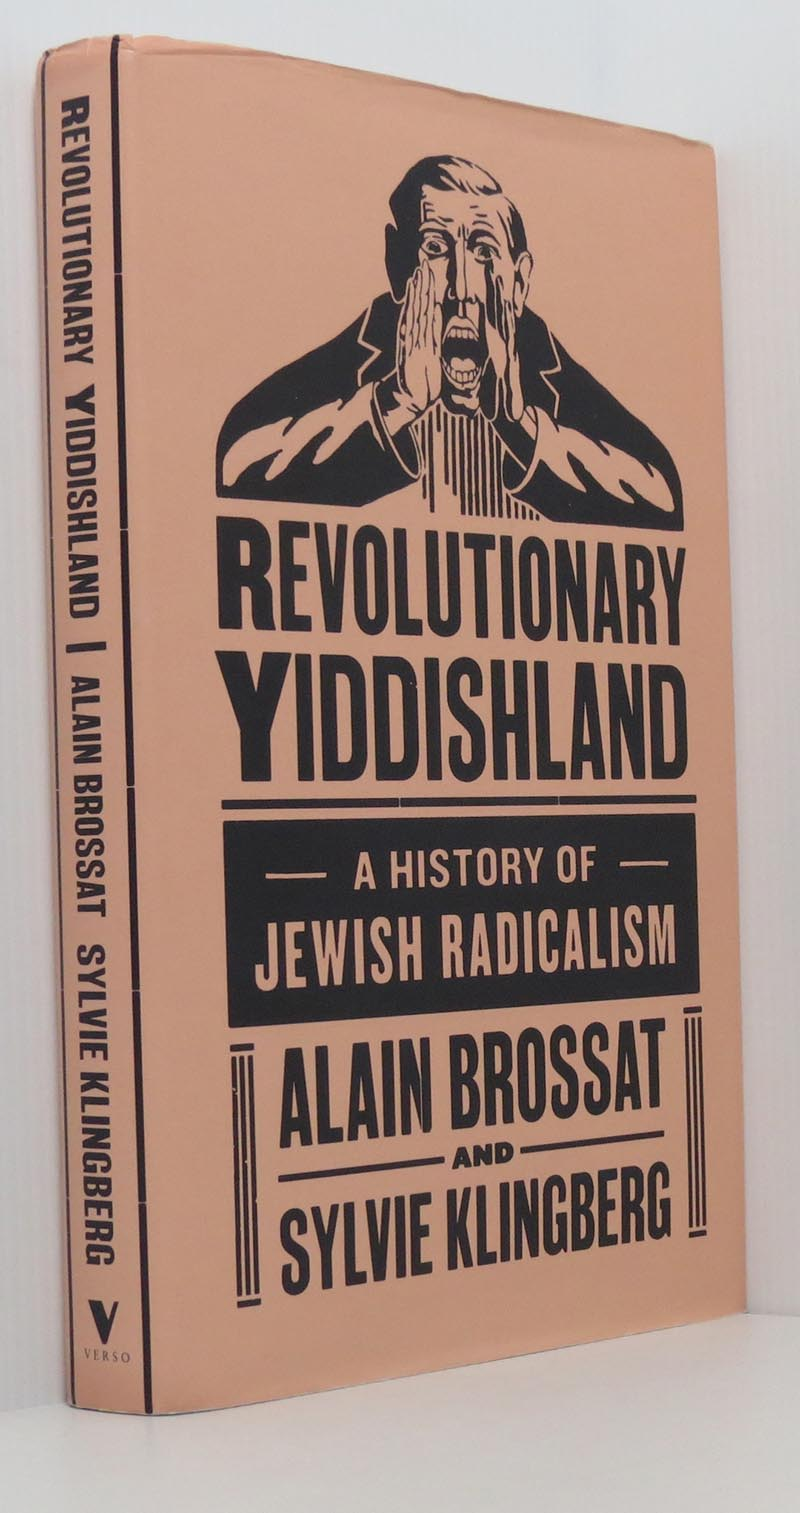 Image for Revolutionary Yiddishland: A History of Jewish Radicalism